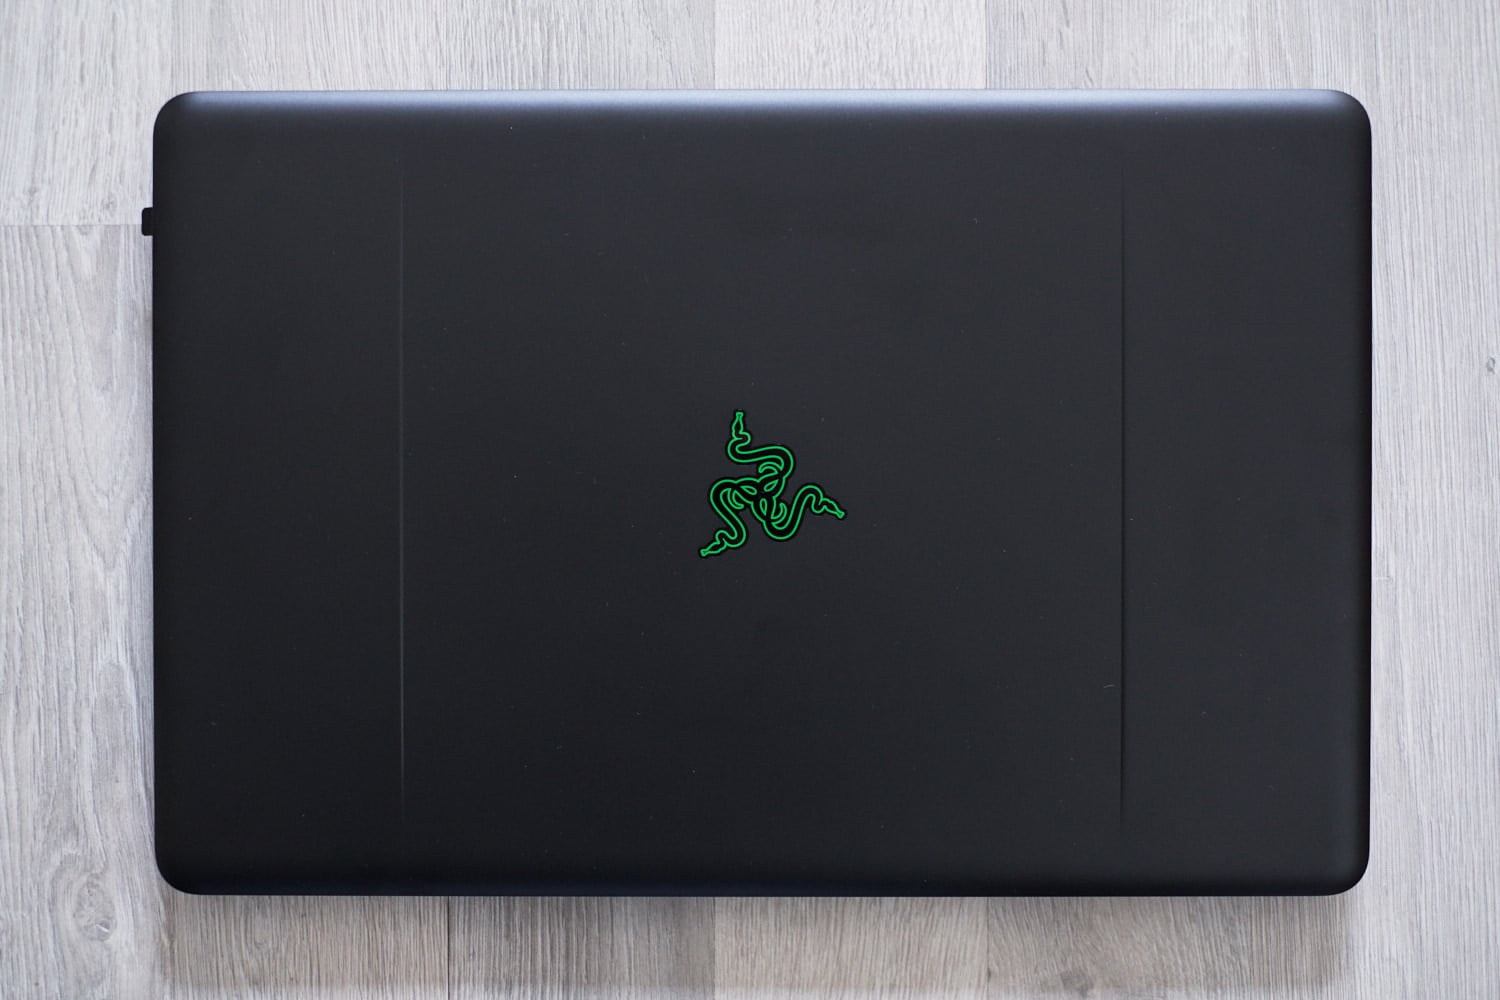 test razer blade pro ordinateur portable 17 pouces pour ls gamer mais pas seulement. Black Bedroom Furniture Sets. Home Design Ideas